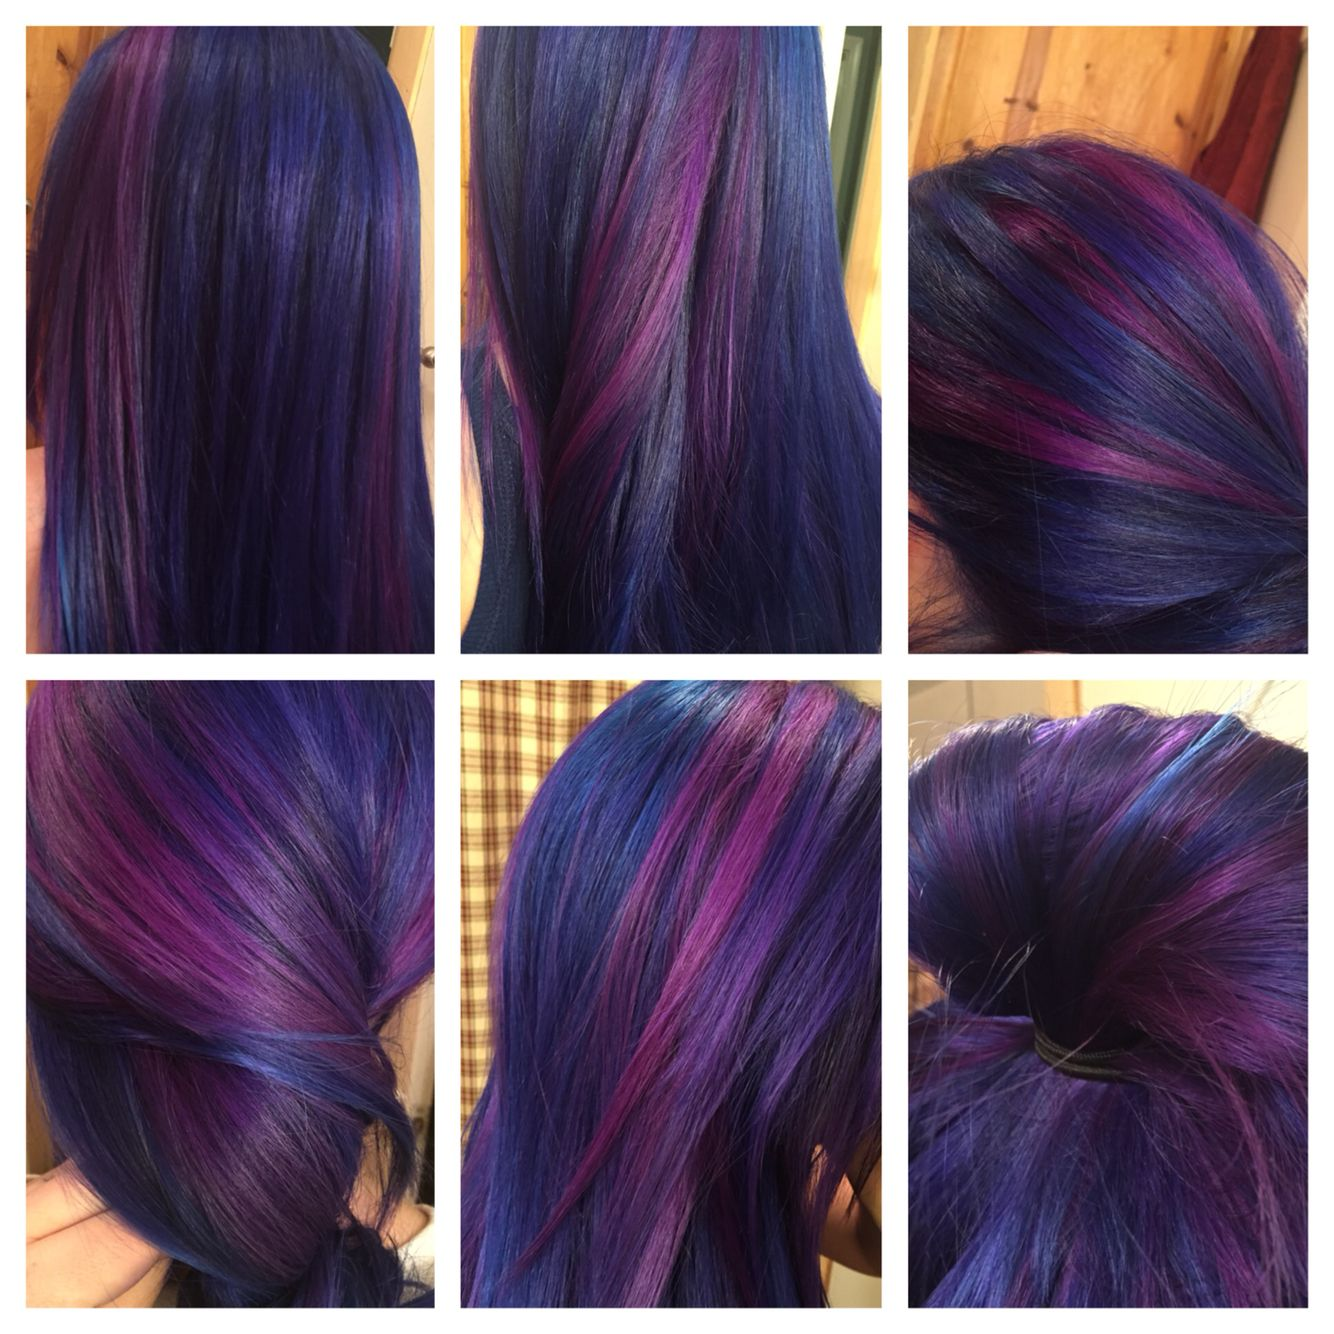 Haylies Hair Winter 2014 2015 Manic Panic After Midnight Manic Panic Purple Haze And Ion Color Brilliance Brights Fusc Hair Color Plum Plum Hair Hair Styles